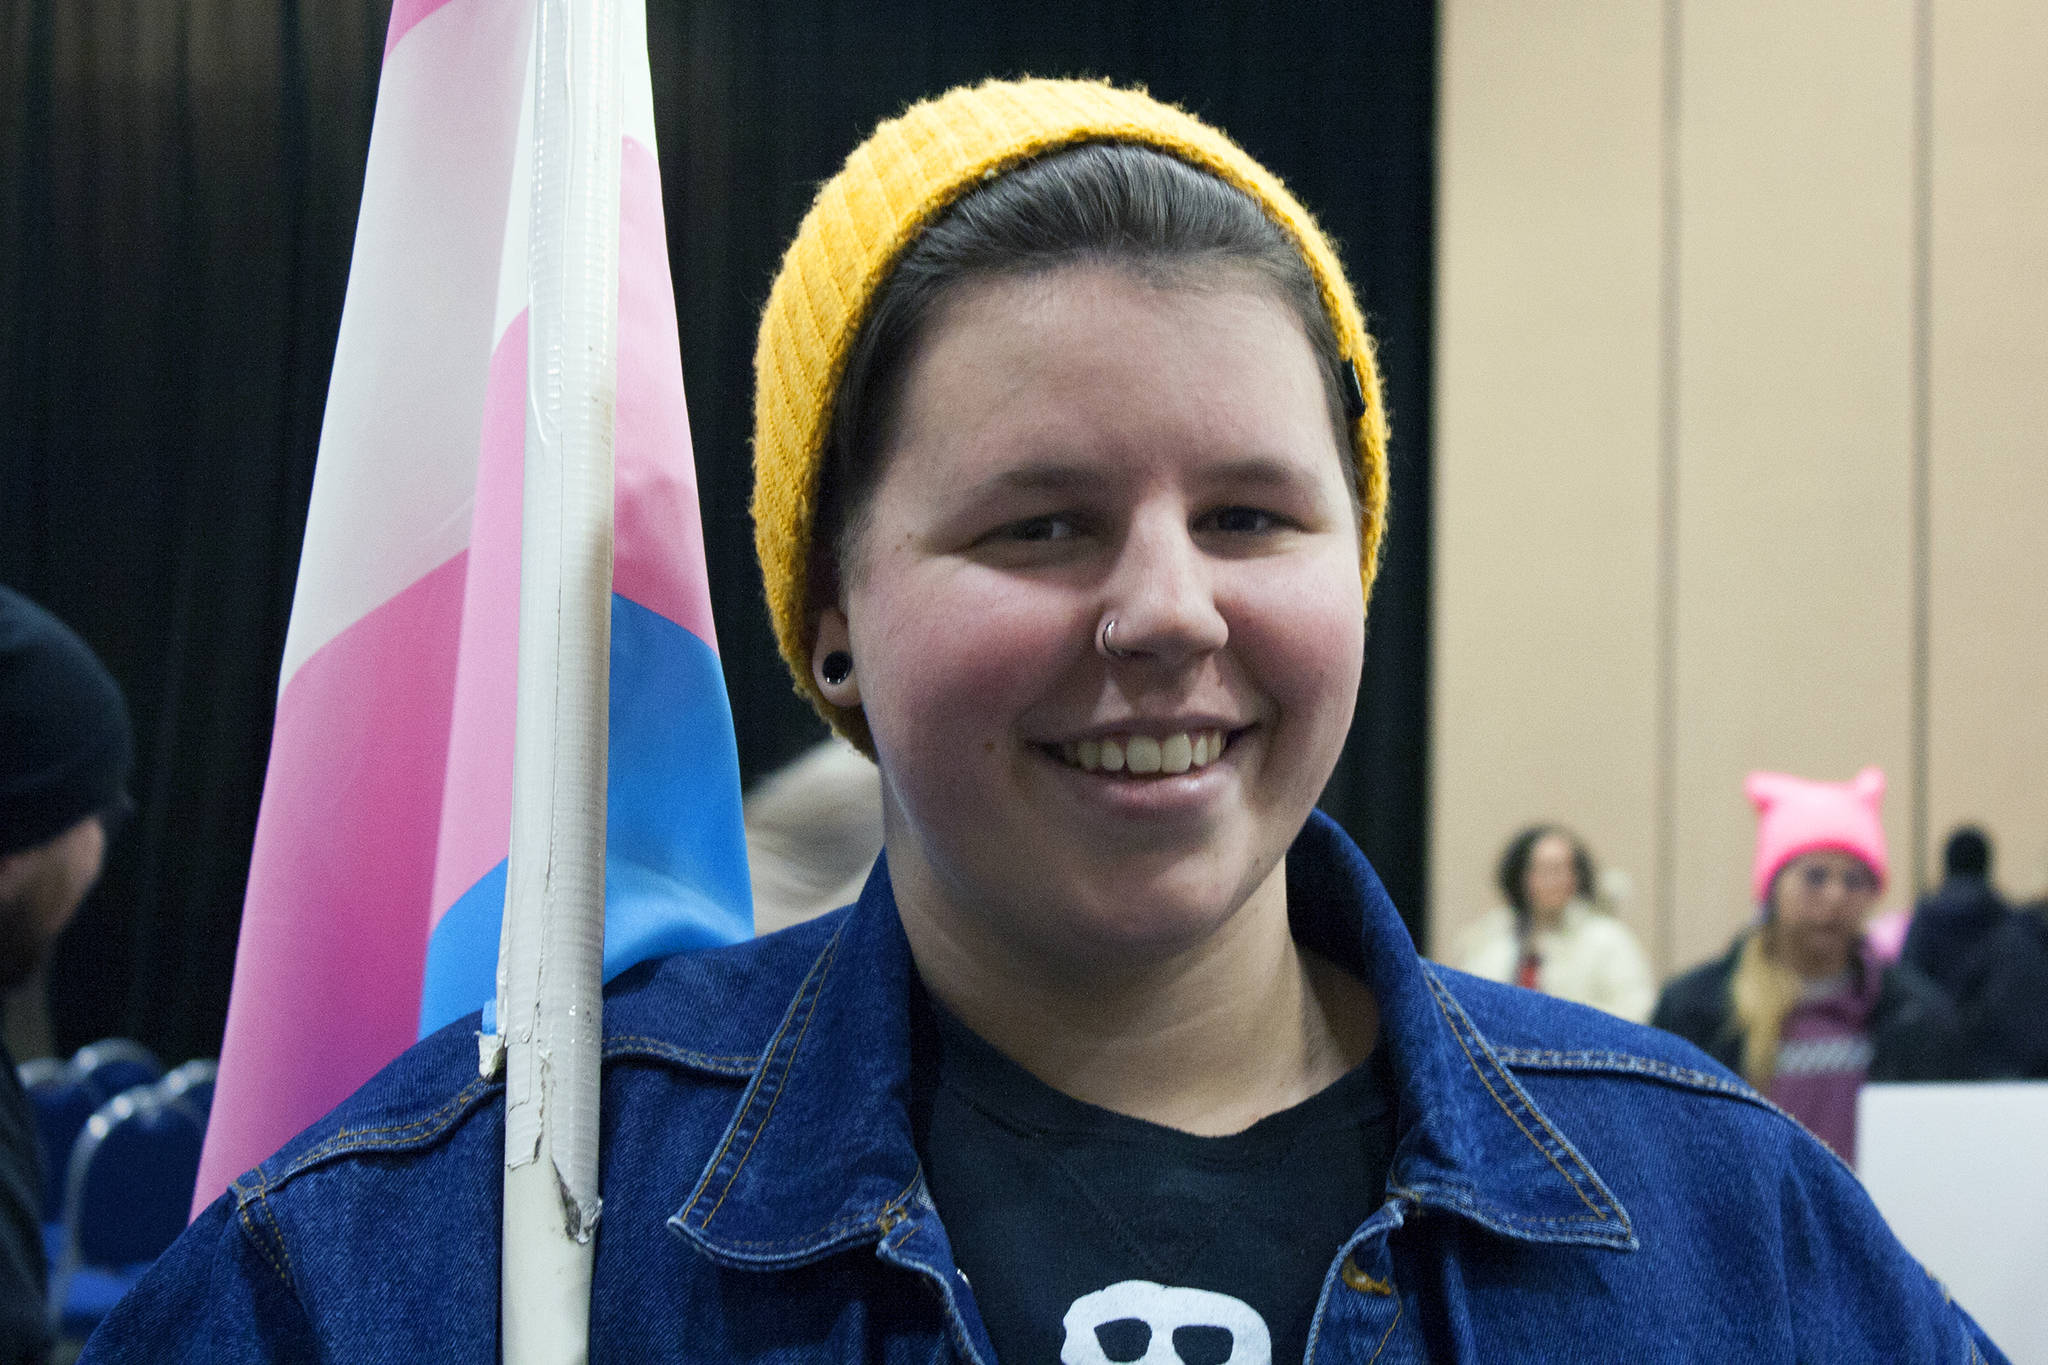 Ty Shae smiles after participating in the 2020 Women's March, Saturday, Jan. 18. The march started at the capitol, but it quickly made its way to Centennial Hall. (Ben Hohenstatt | Juneau Empire)